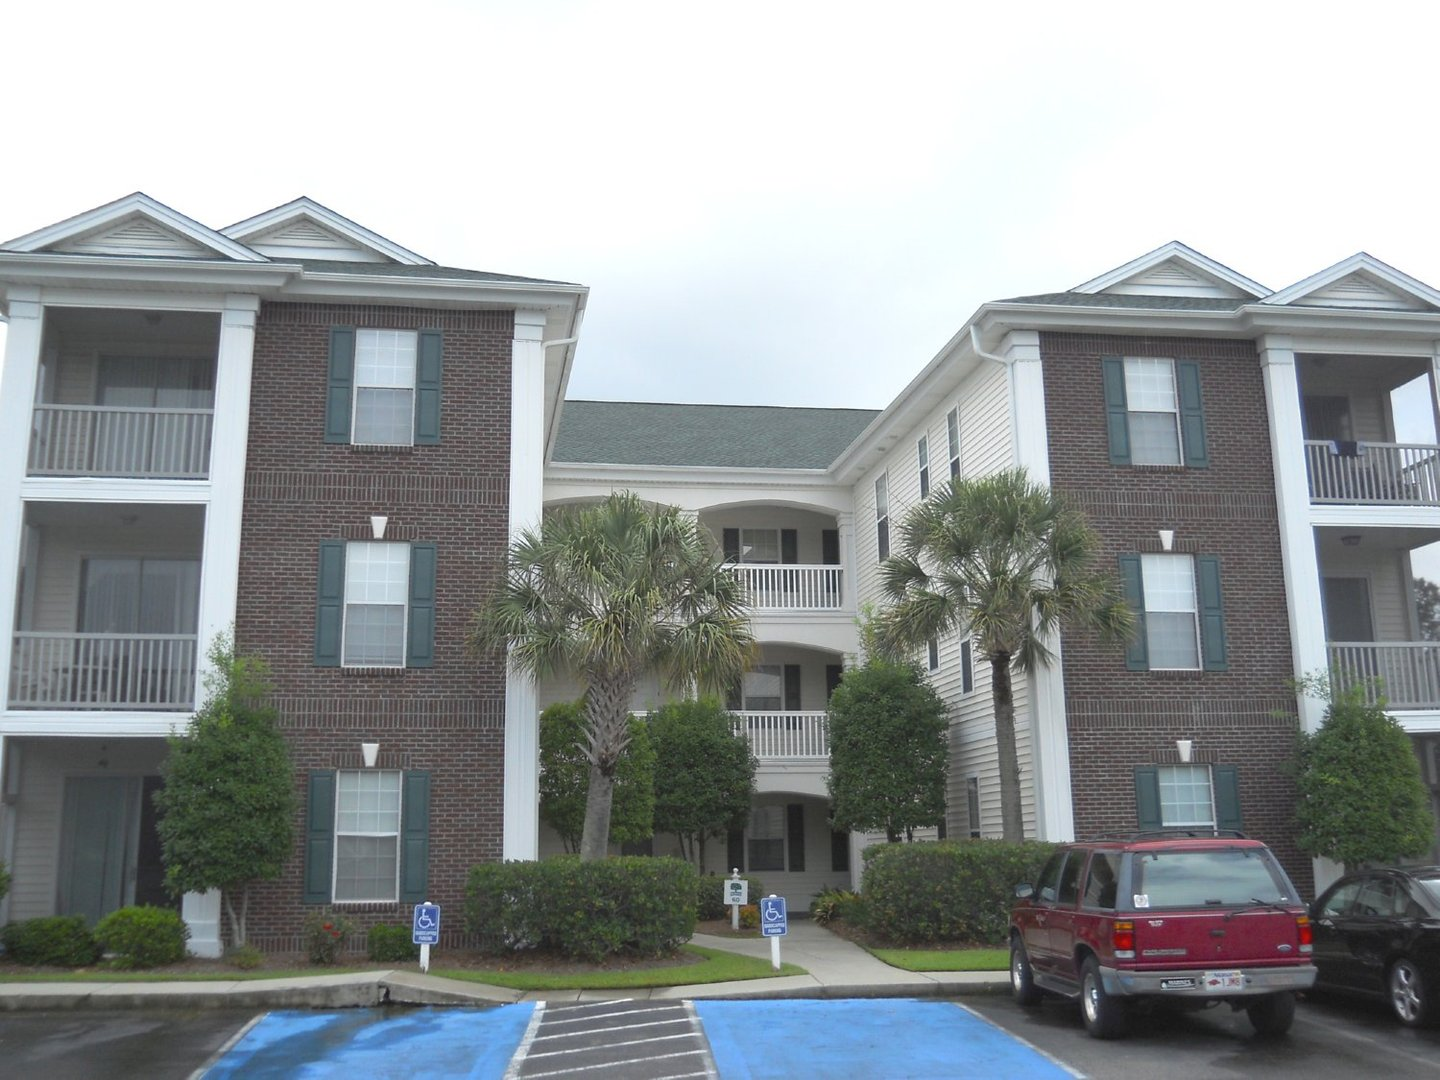 492 river oaks drive, unit 60-c, myrtle beach, sc 29579